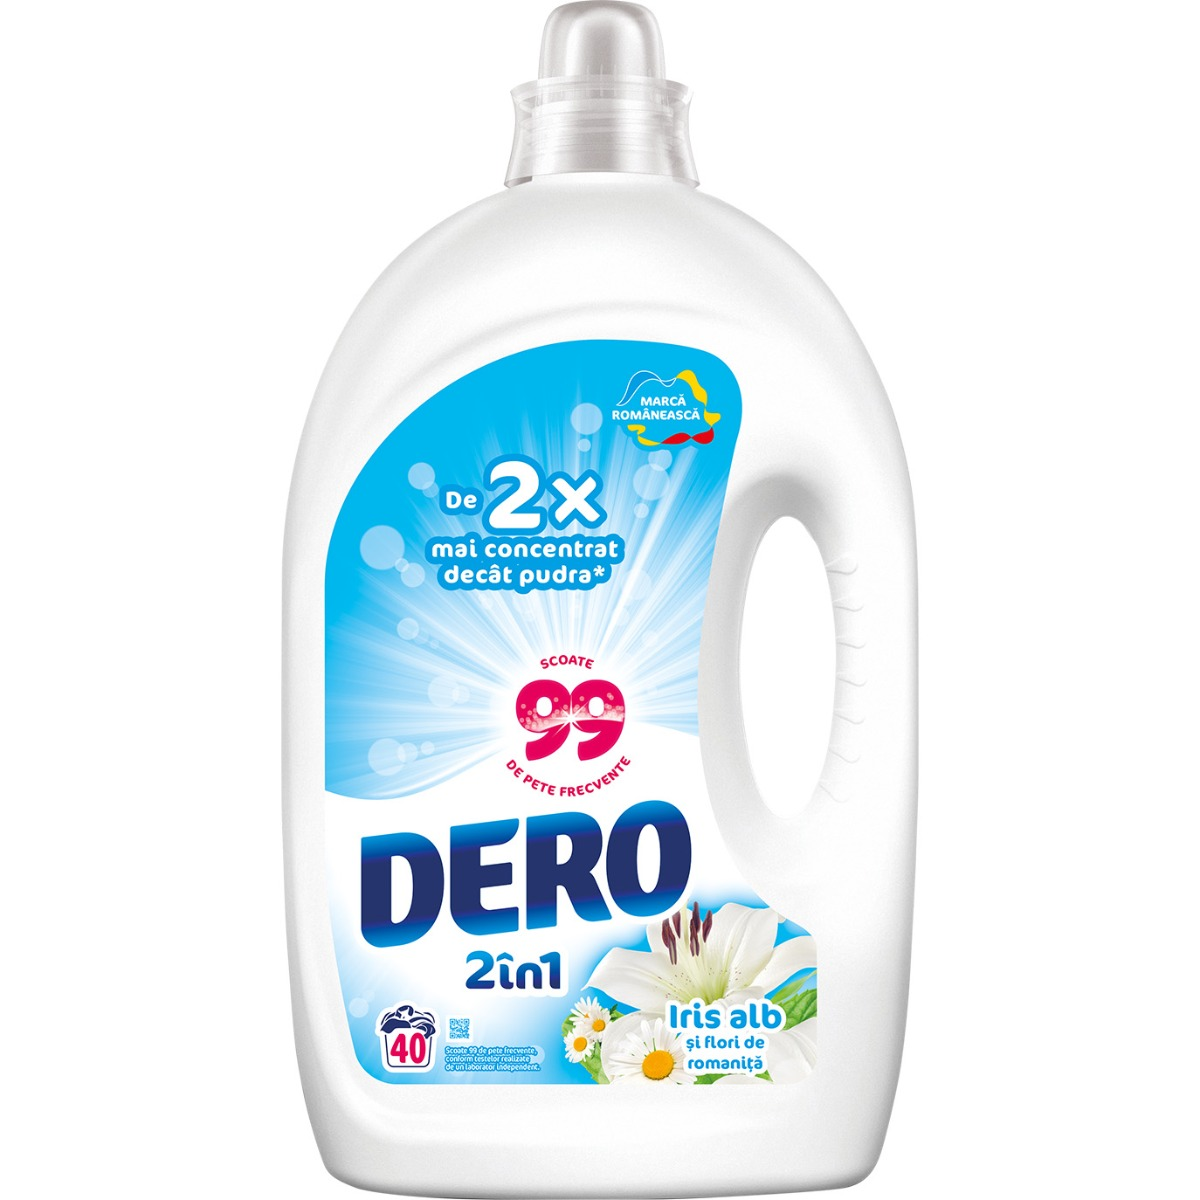 Detergent lichid Dero 2 in 1 Iris Alb, 40 spalari, 2 L imagine 2021